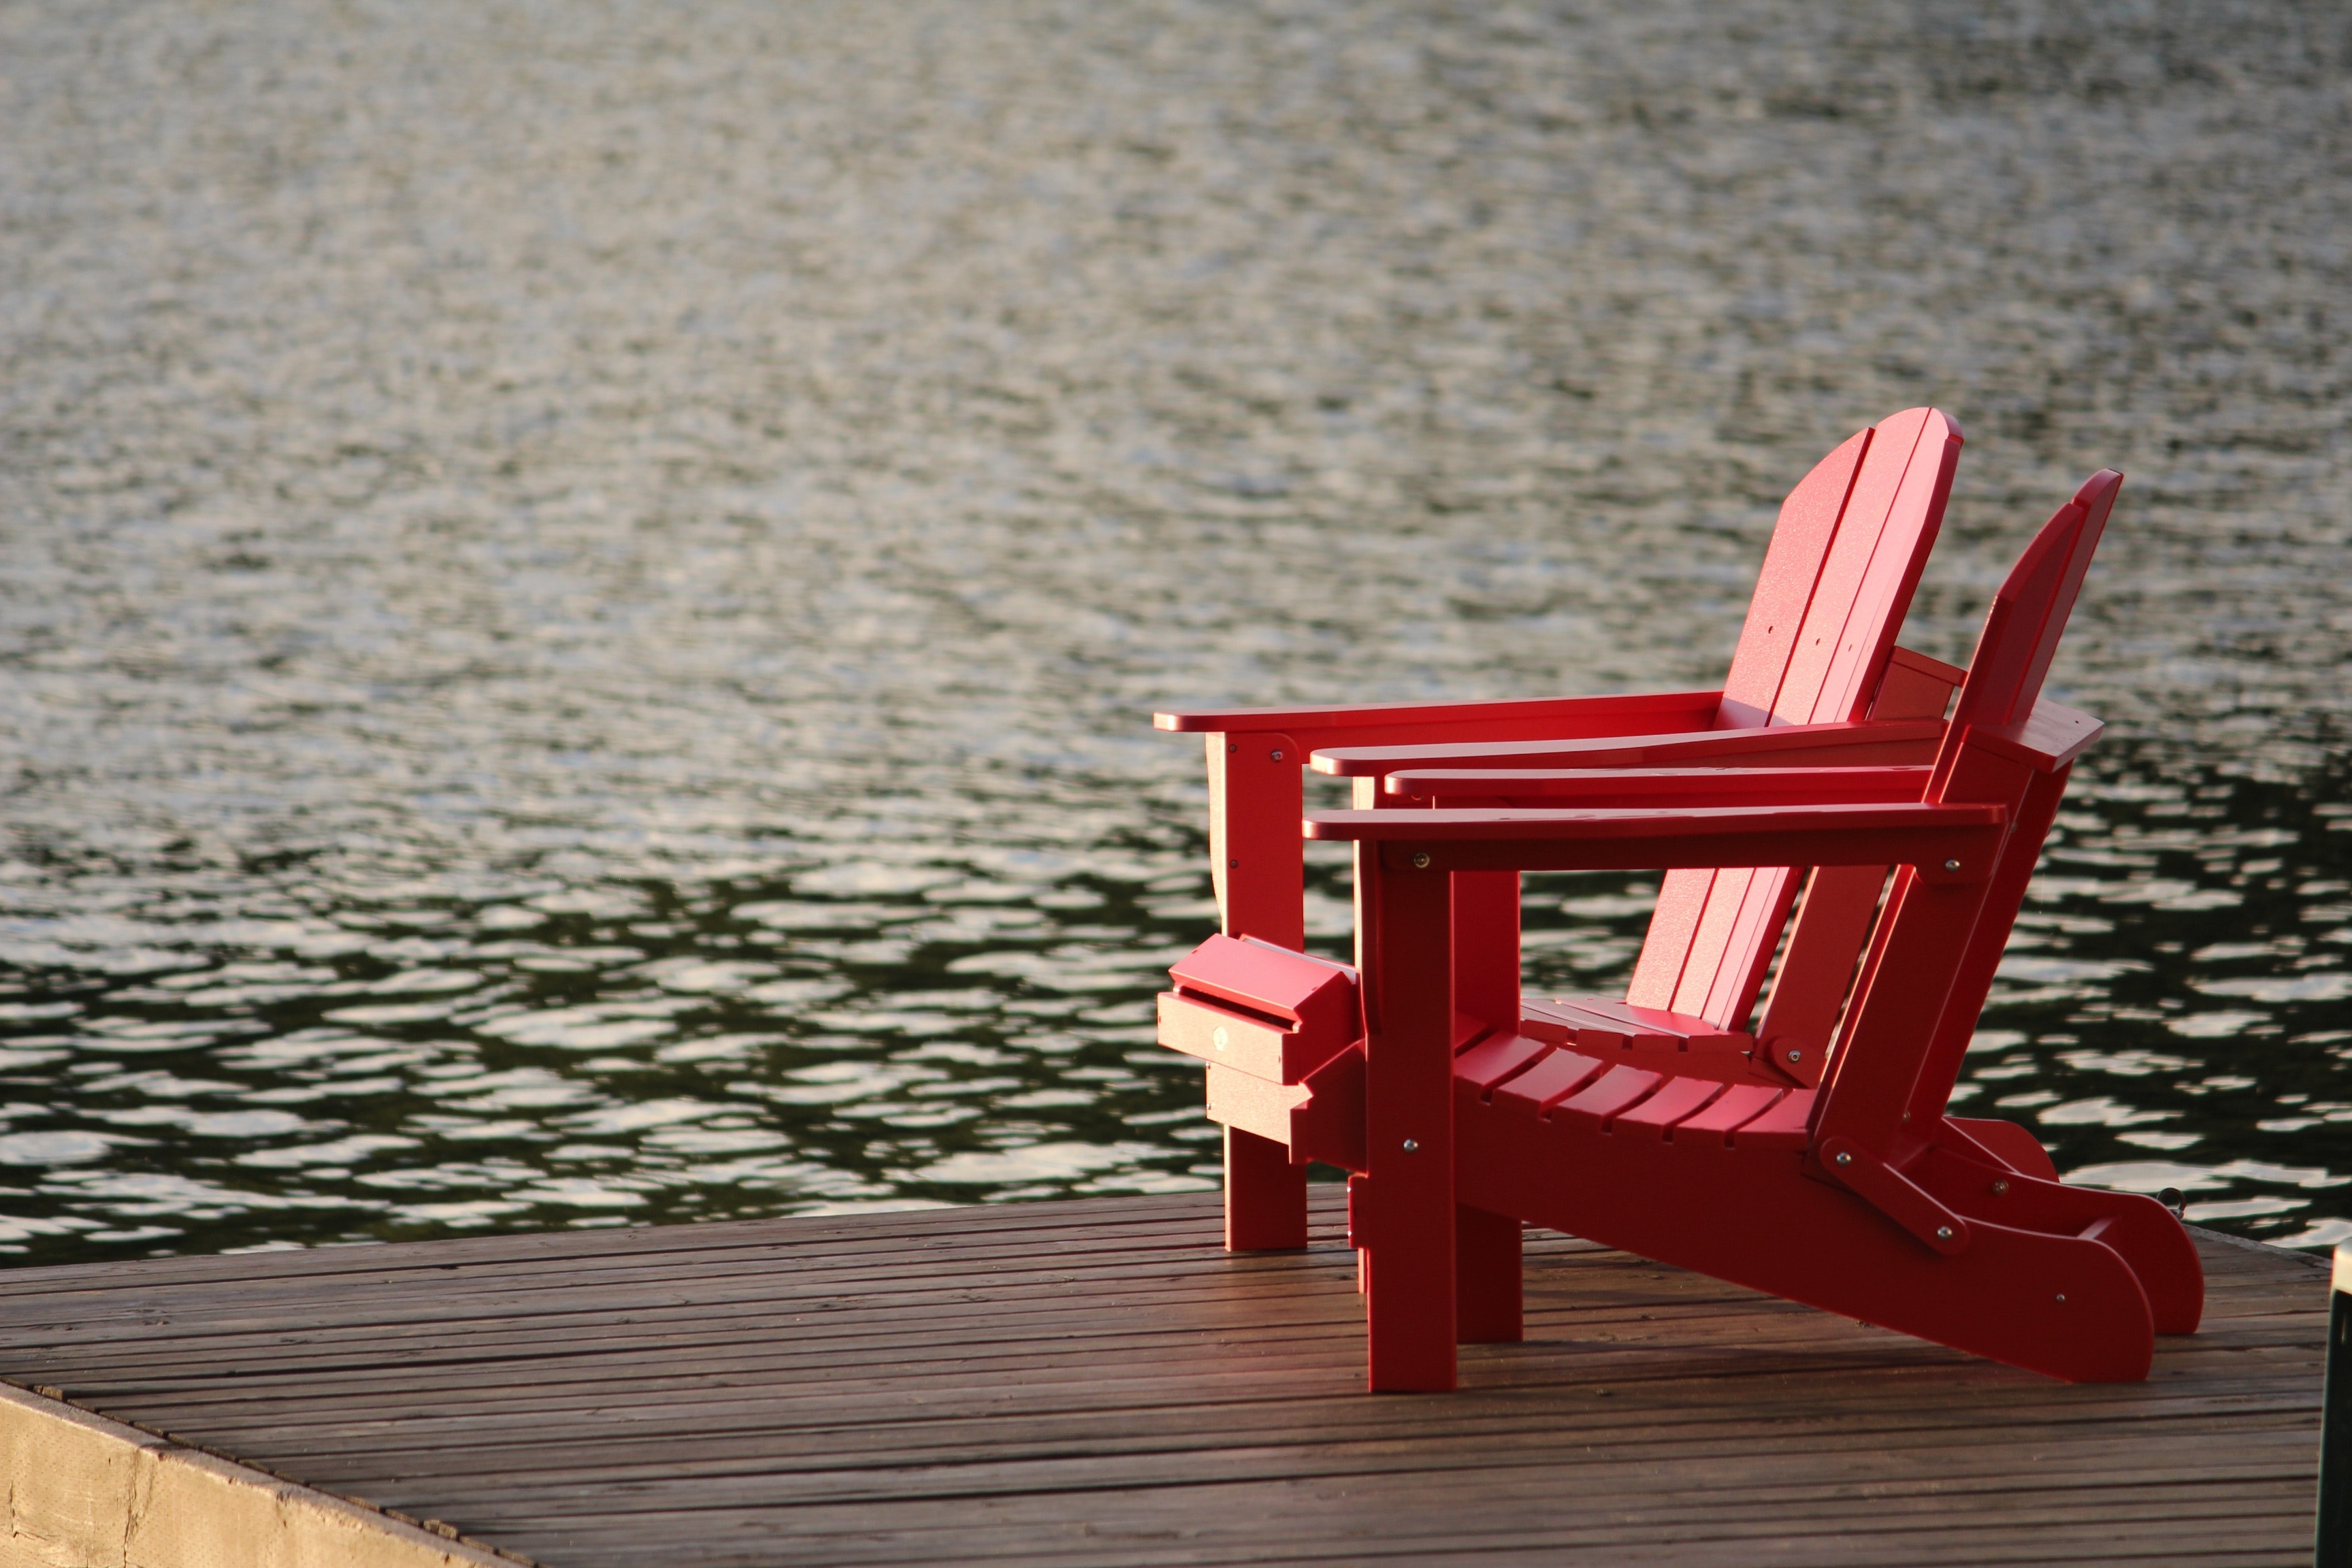 Red wooden lounge chair on brown boardwalk near body of water during daytime photo